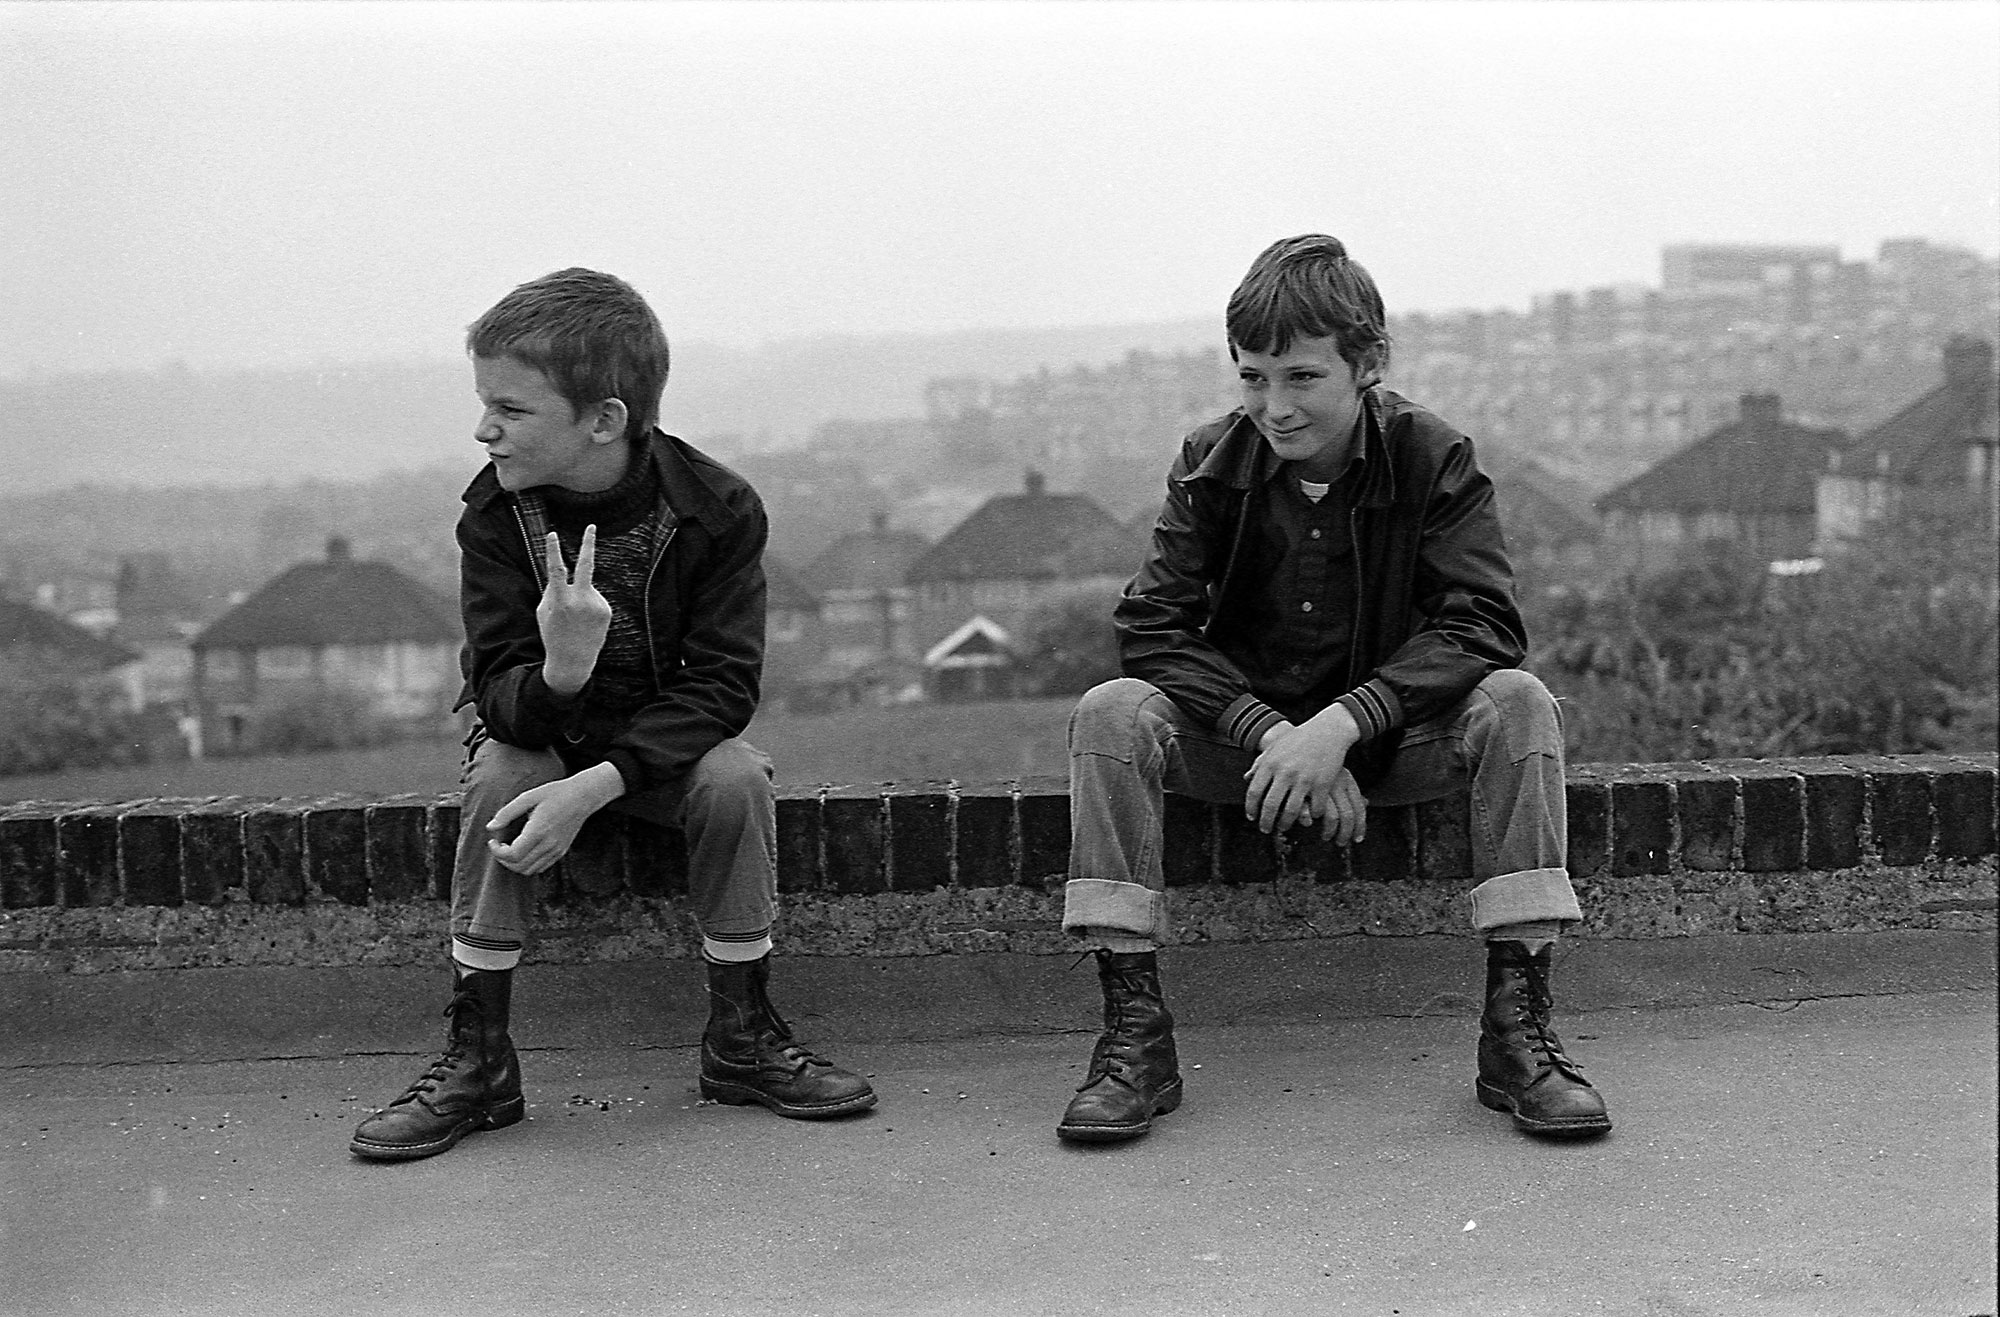 Gavin WATSON 'Neville and Gary up the local park' 1980, Black and white photograph on gloss paper, Courtesy of the artist